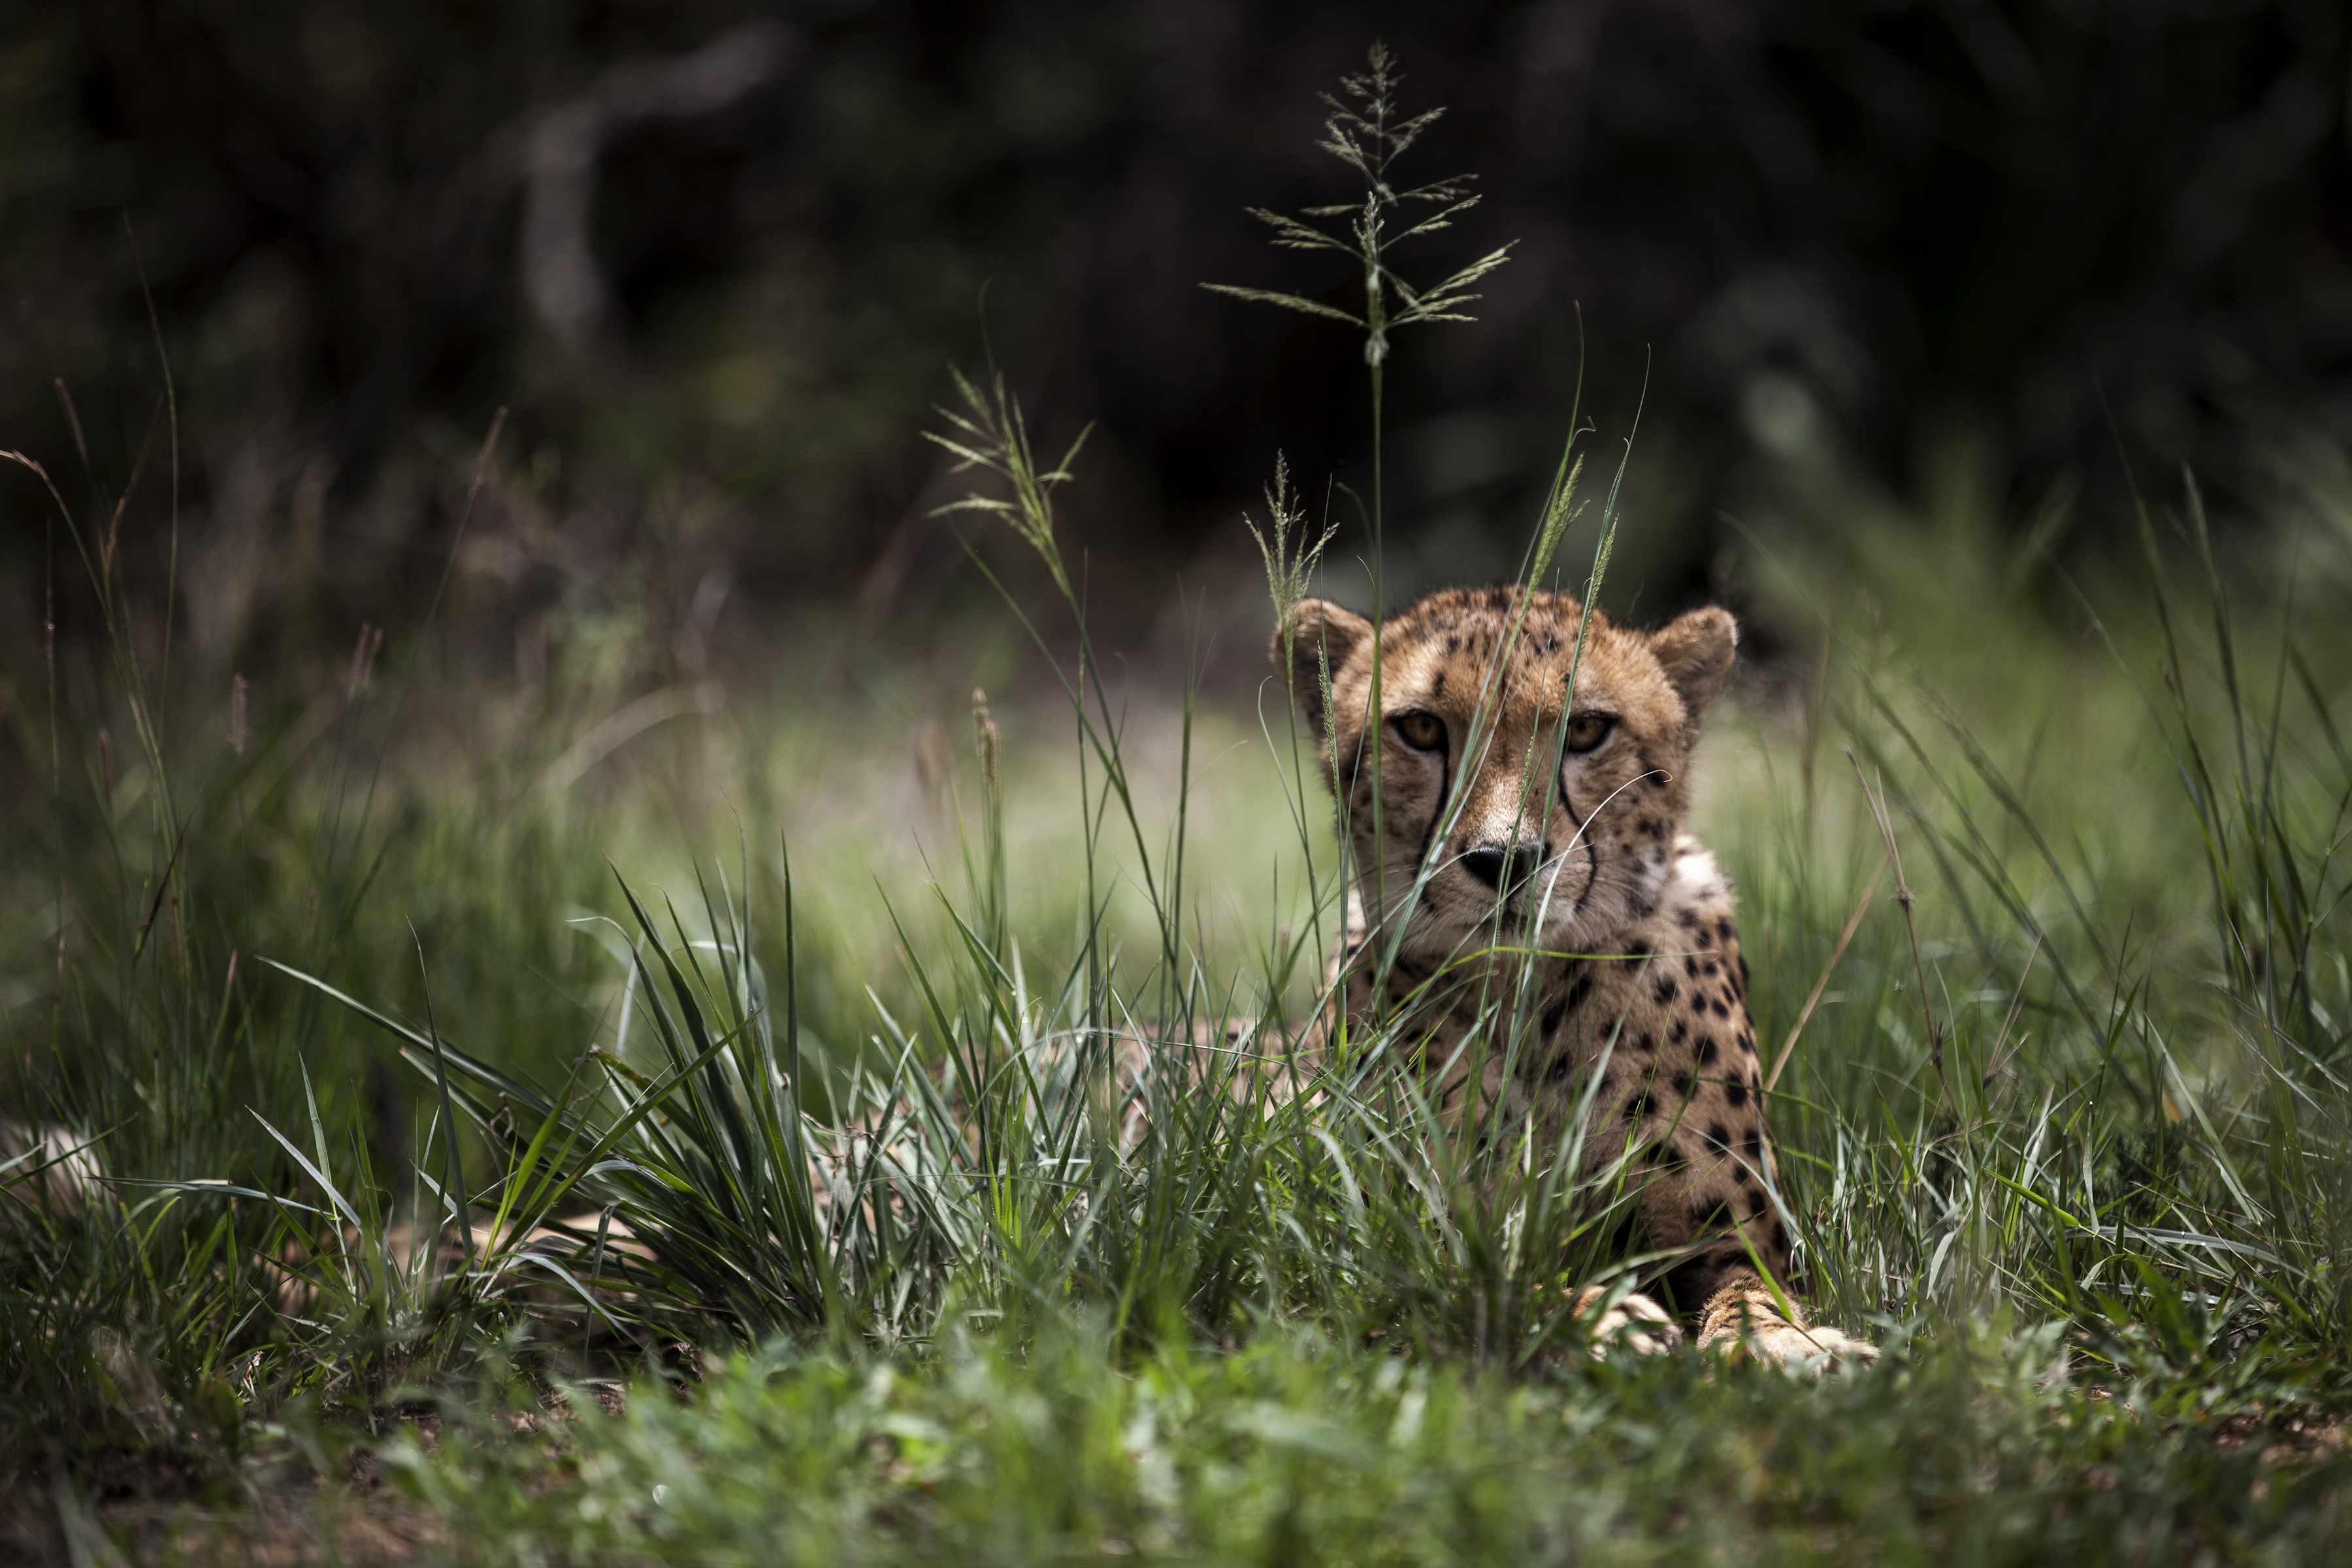 """A Juvenile male cheetah is pictured inside a closed camp at the Ann van Dyk Cheetah Centre on December 30, 2016 in Hartbeespoort, South Africa.  Cheetahs are """"sprinting"""" to extinction due to habitat loss and other forms of human impact, according to a new study out this week which called for urgent action to save the world's fastest land animals. / AFP PHOTO / JOHN WESSELS"""